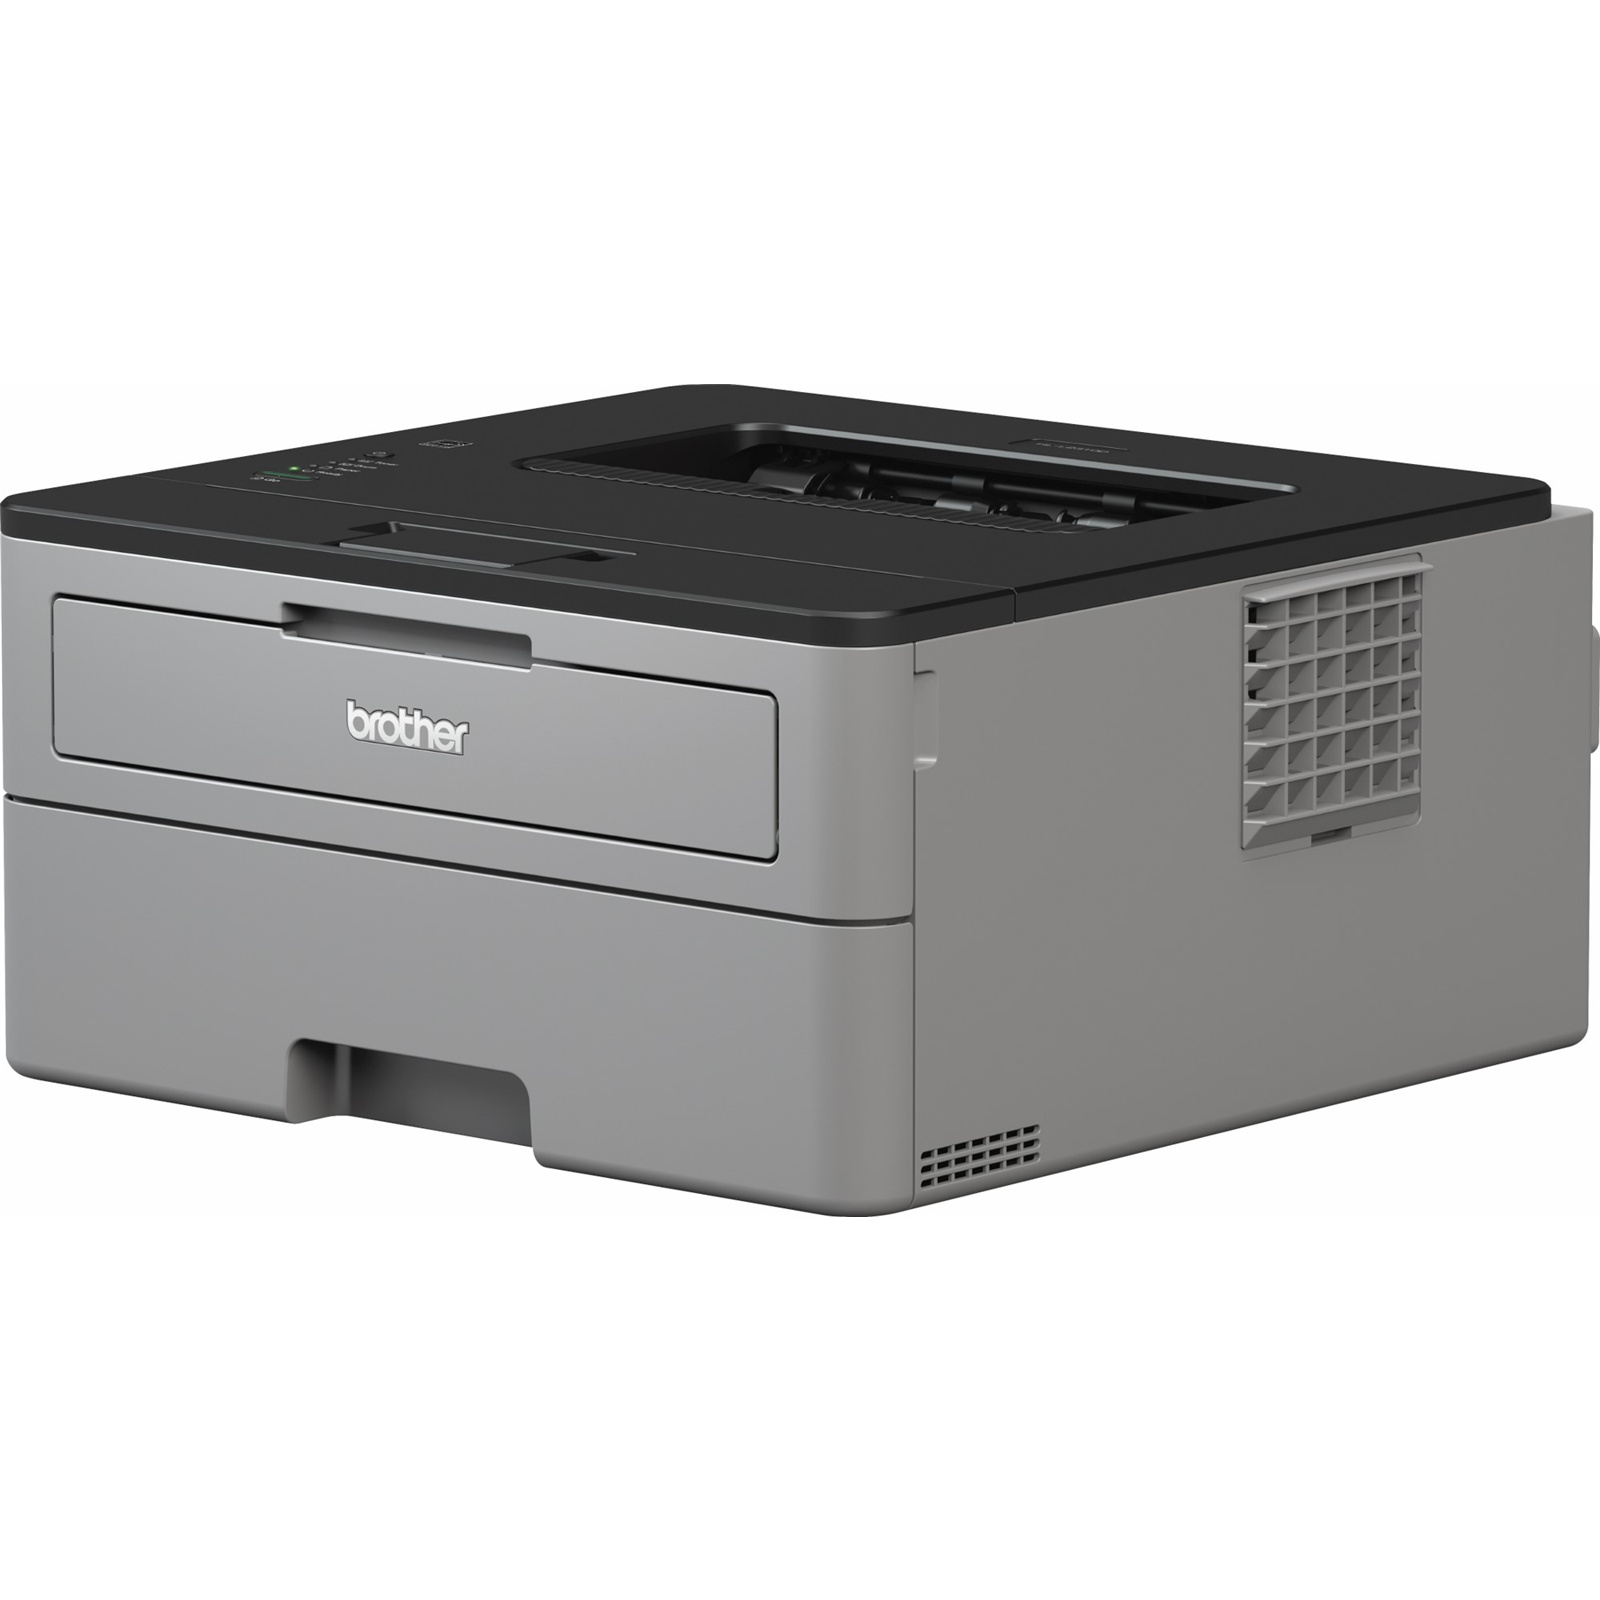 Buy the Brother HLL2310D Mono Laser Printer Duplex/ 250